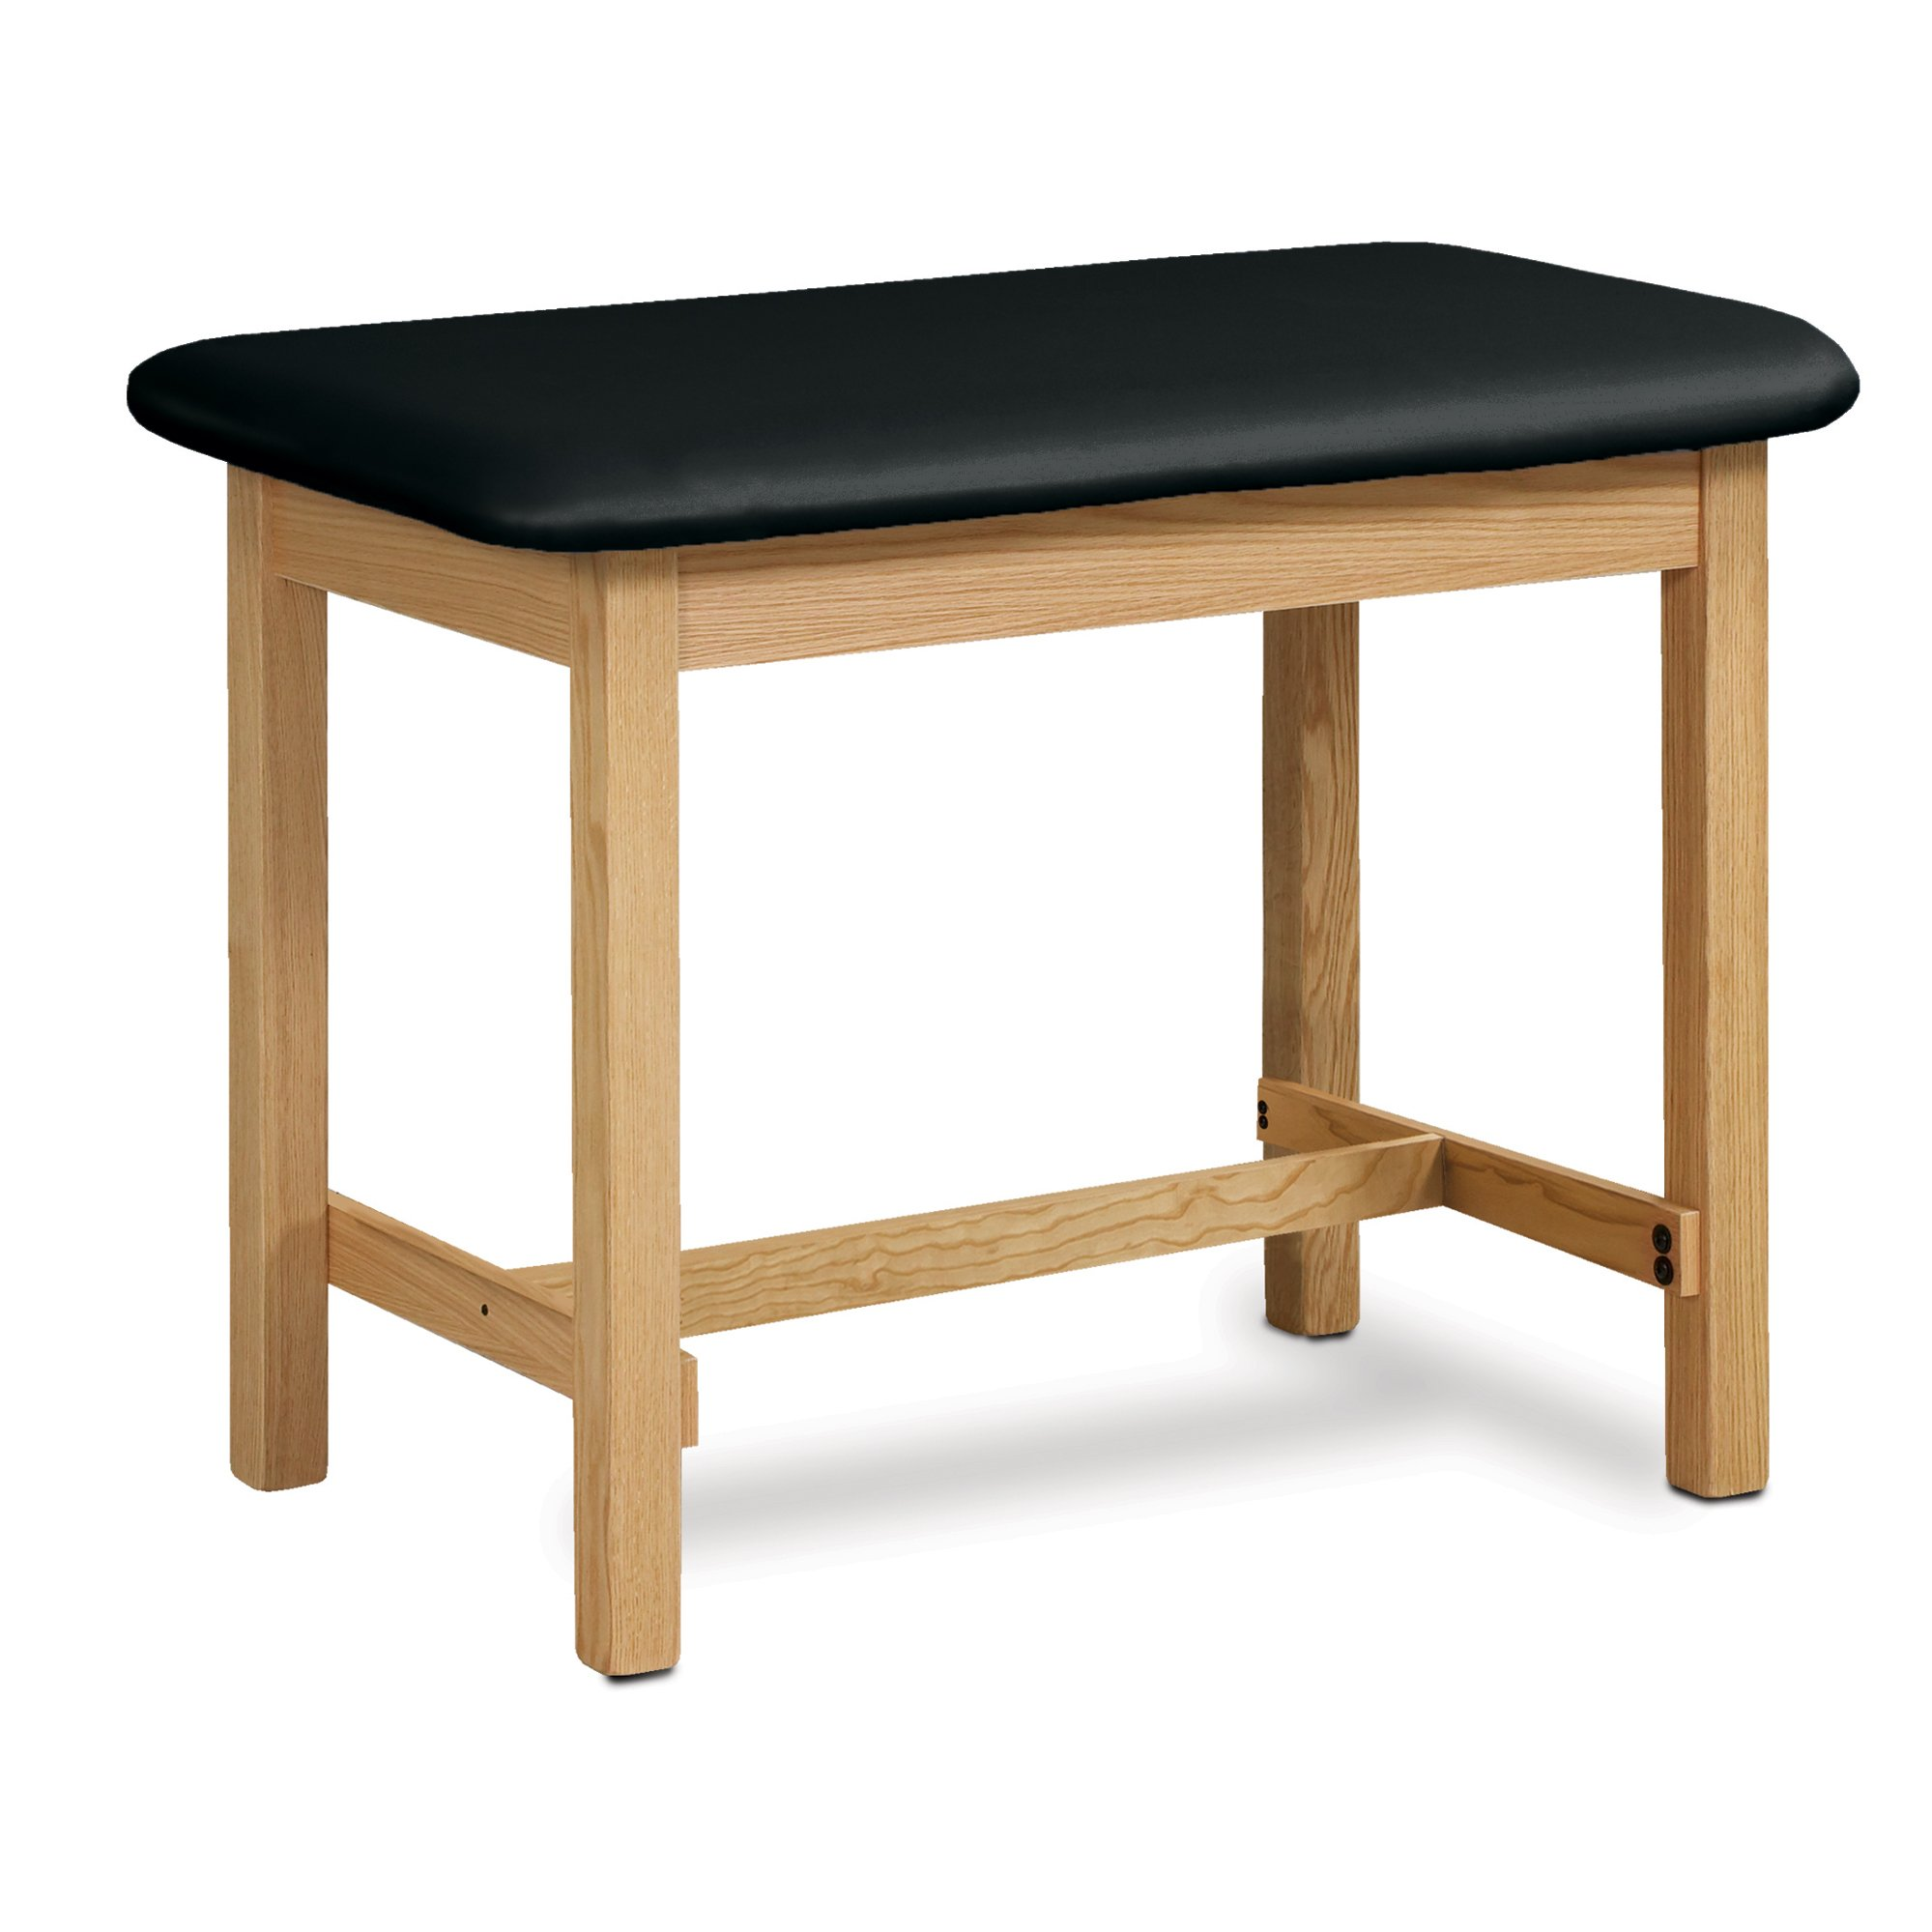 27'' Width Taping Table with H-Brace in Natural-Black